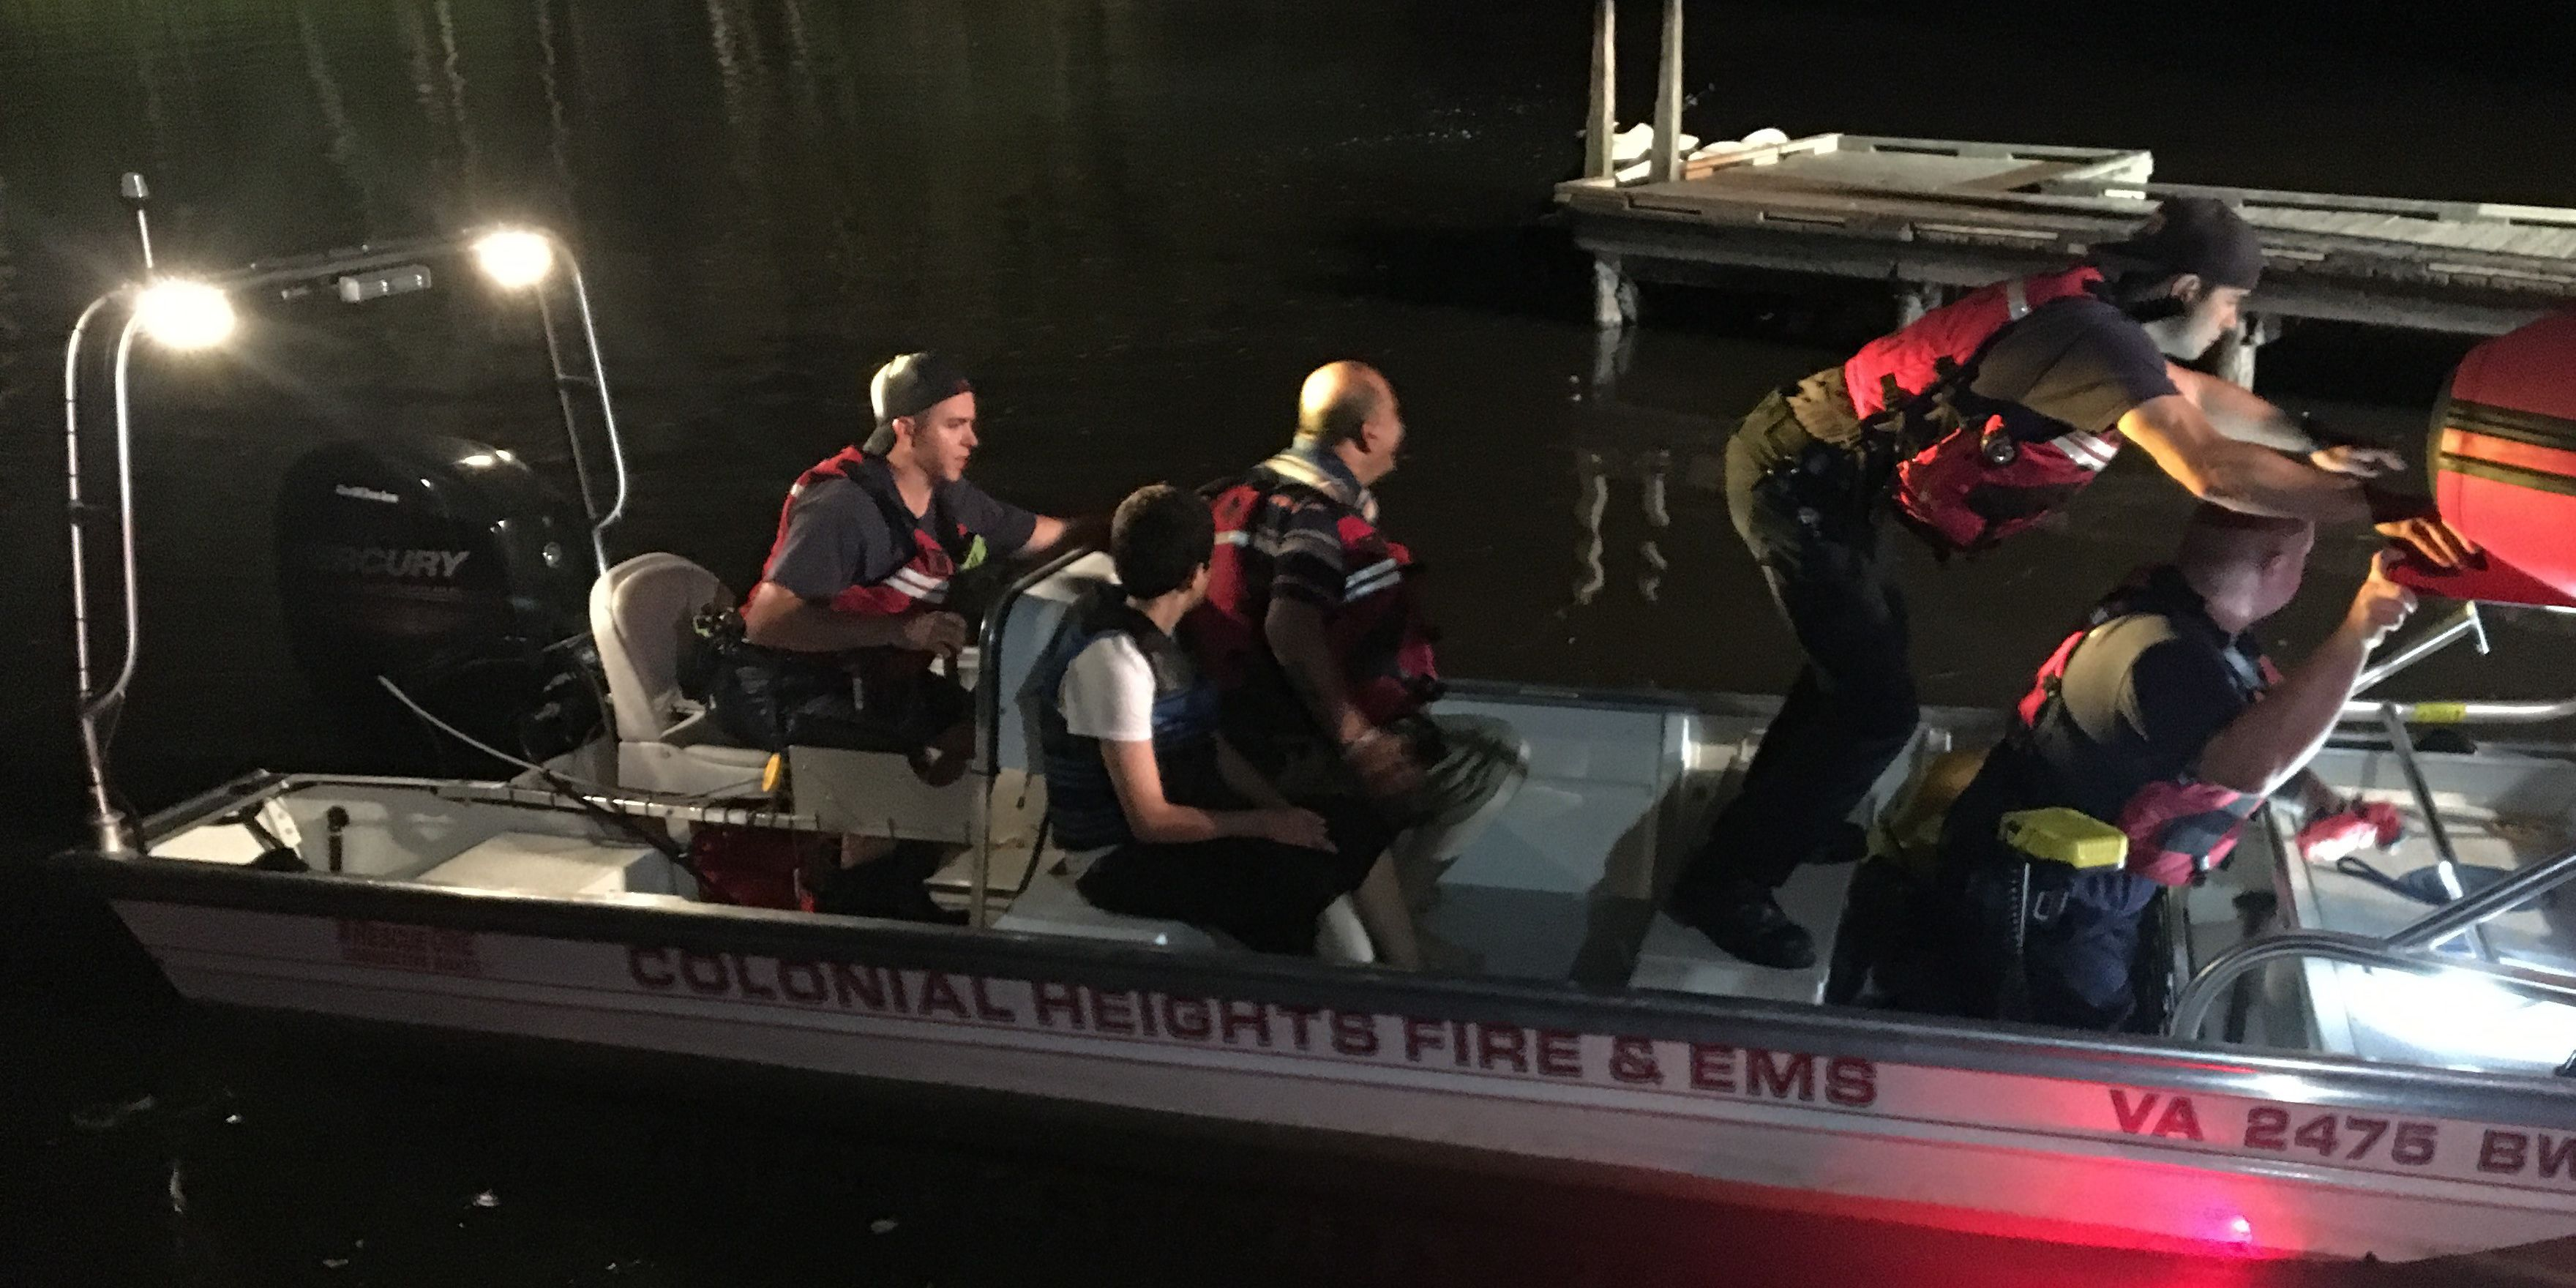 2 adults, 3 juveniles rescued after jet skis get stuck in Appomattox River